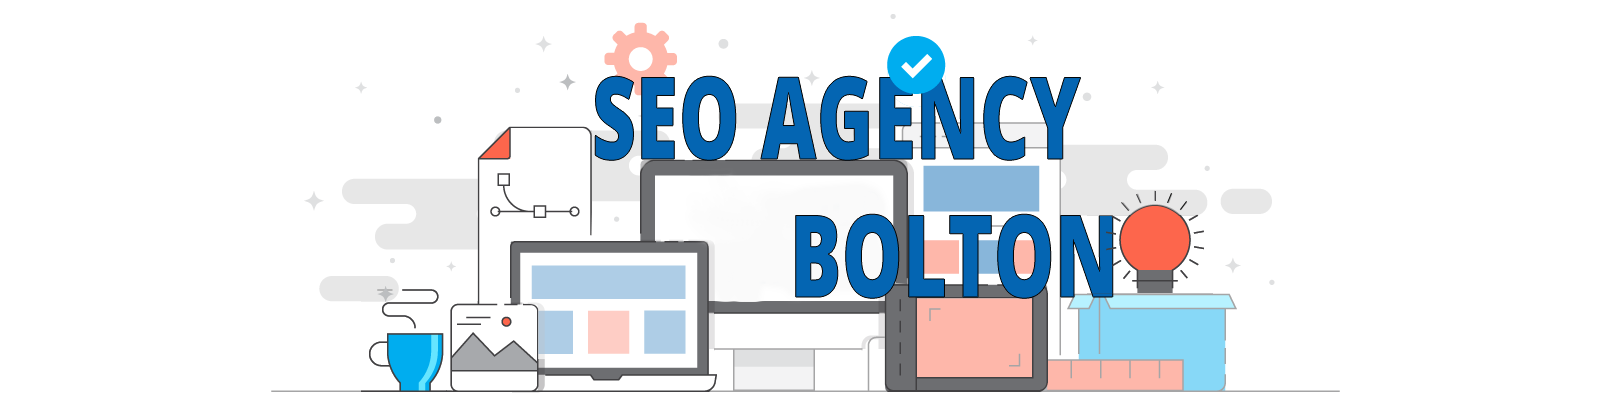 seek social seo agency bolton header with transparent background